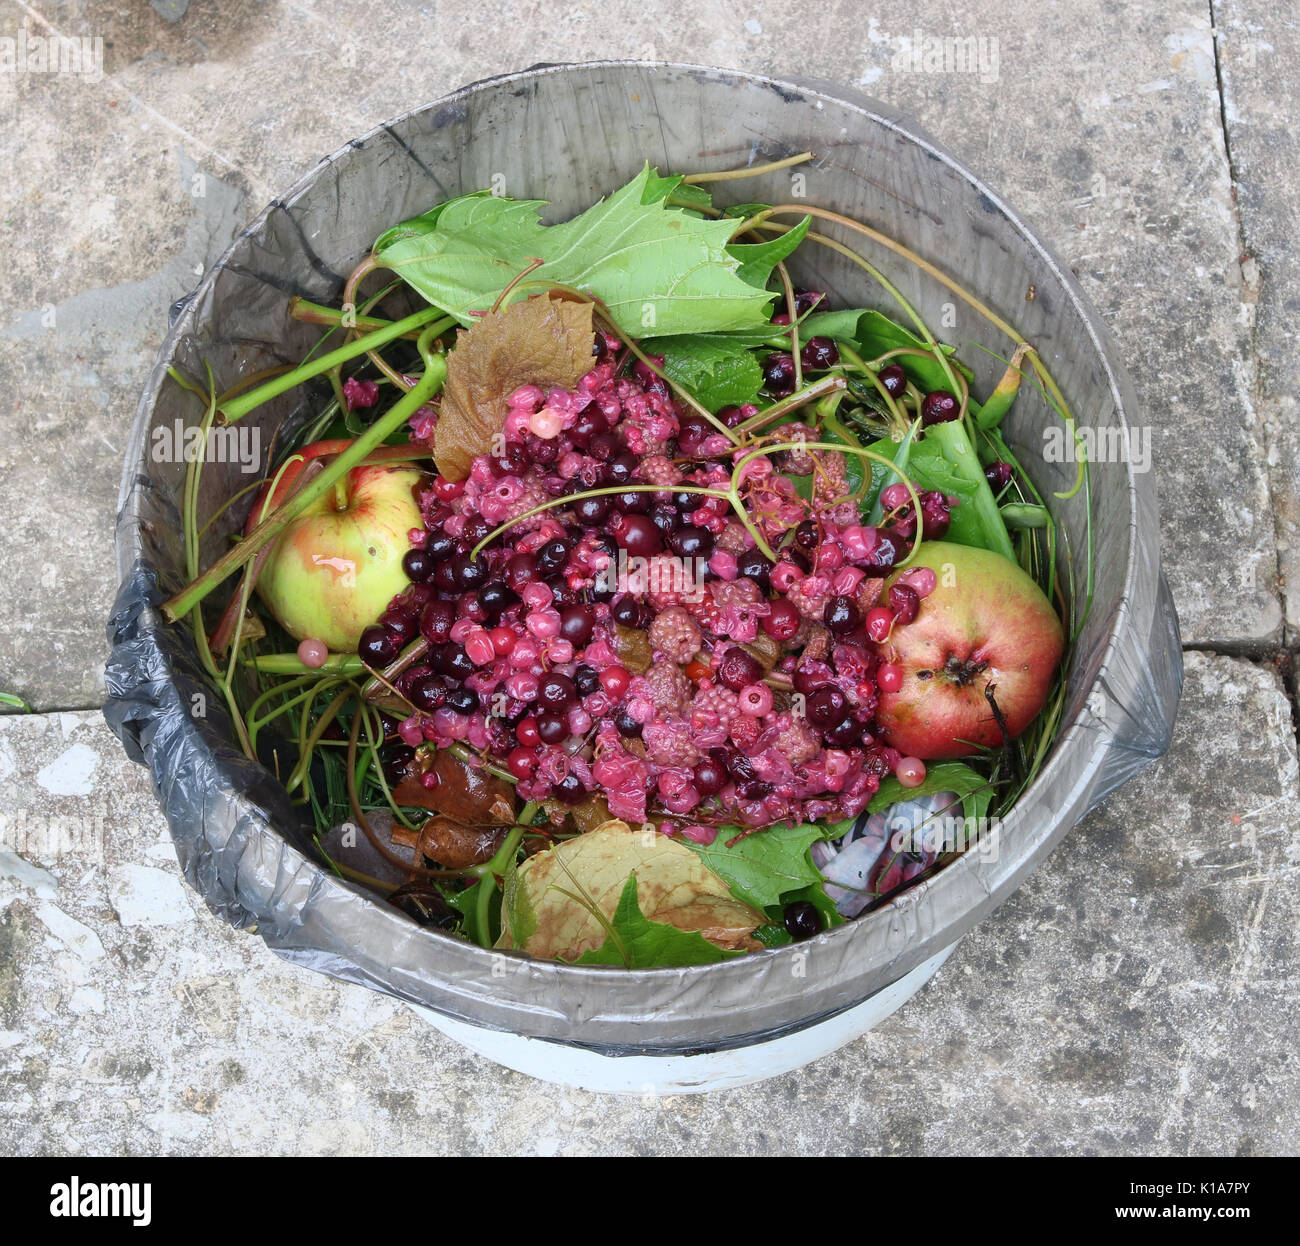 Trench Composting With Kitchen Scraps: Organic Waste Kitchen Stock Photos & Organic Waste Kitchen